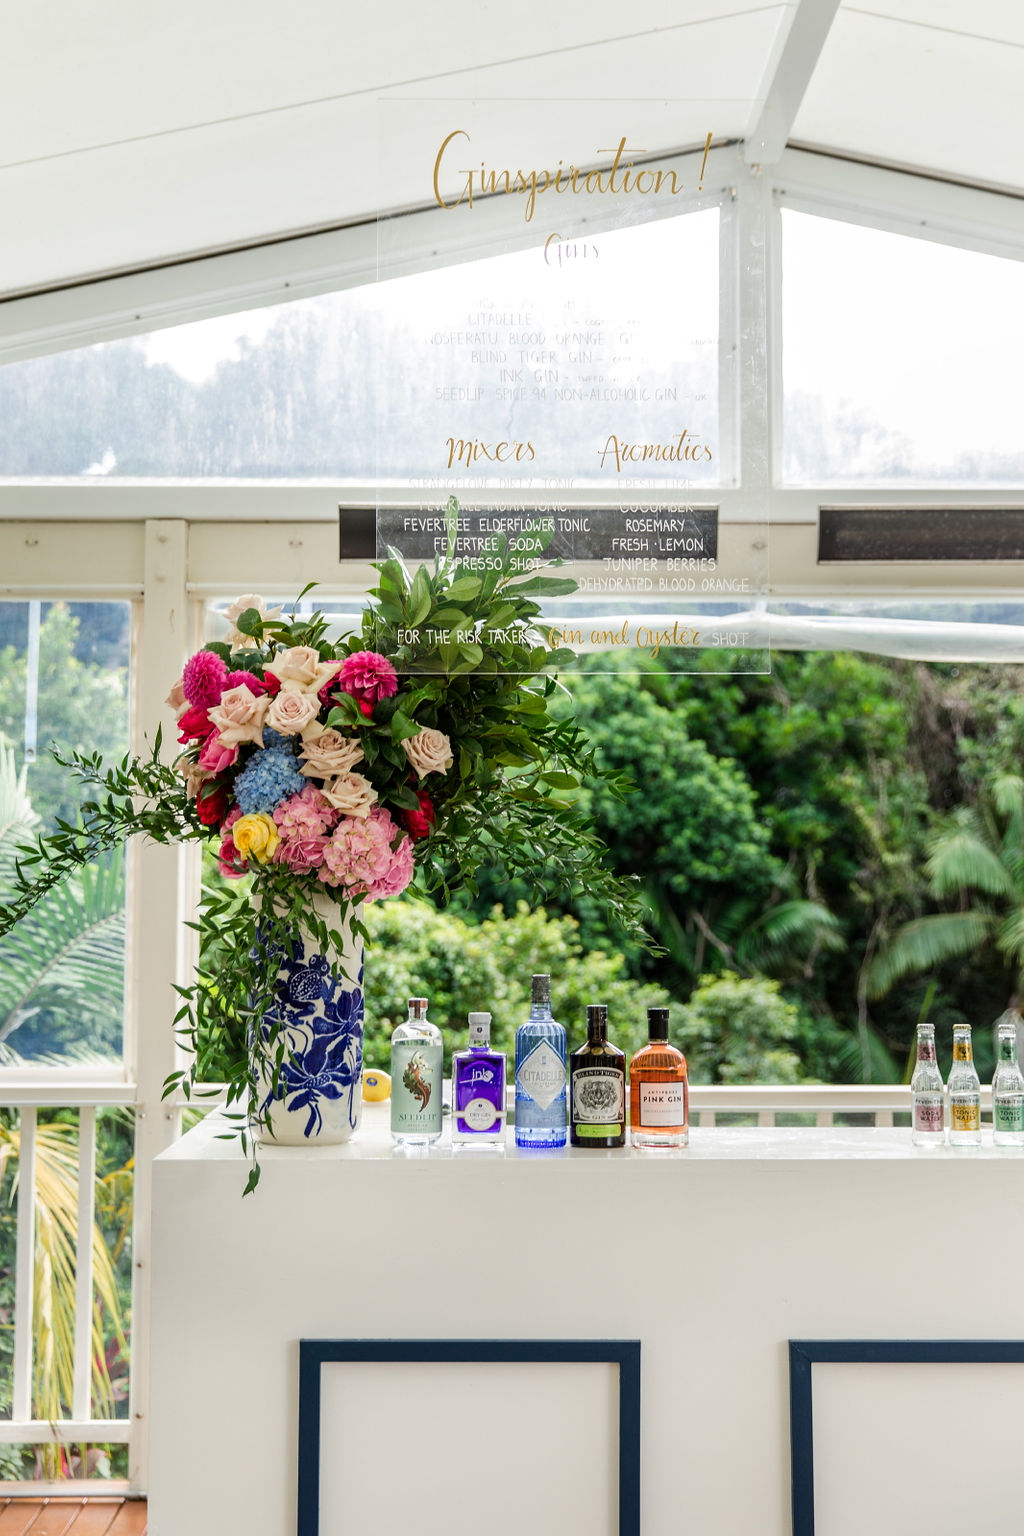 Gin Station at Wedding Reception and Cocktail Garden Party